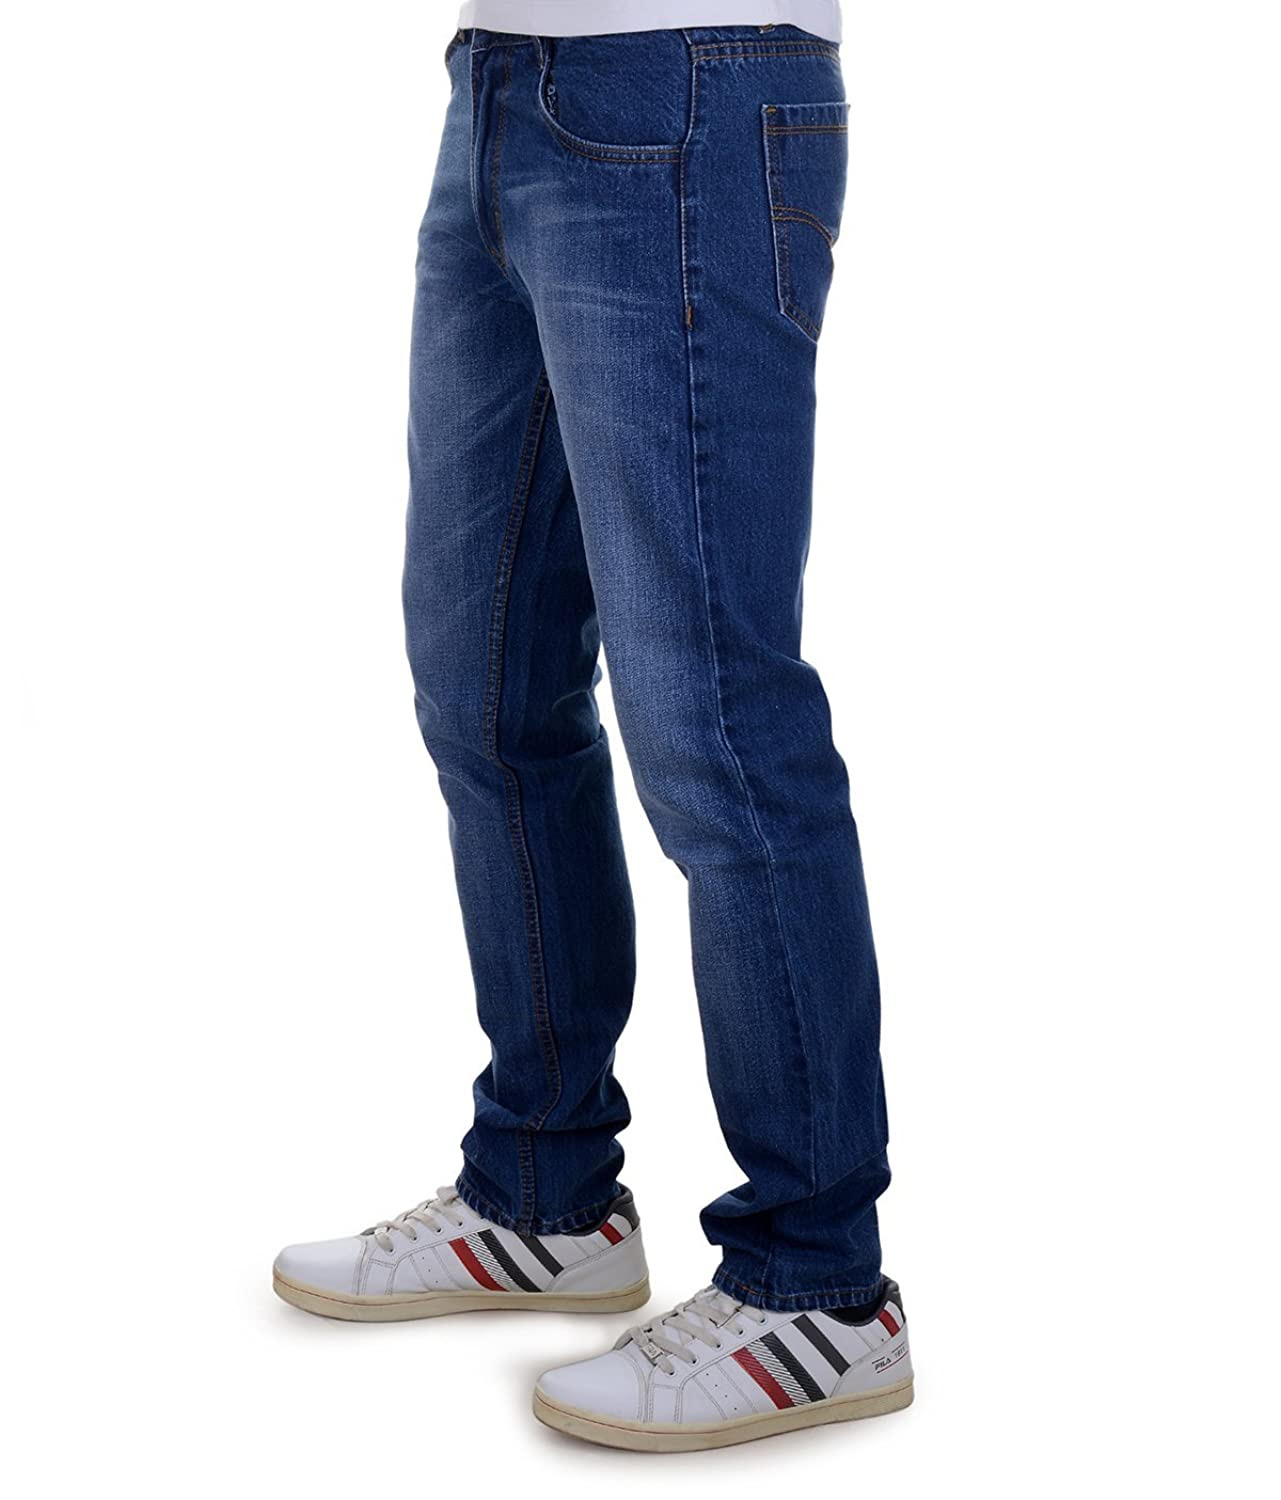 Deals on Ben Men's Regular Fit Jeans